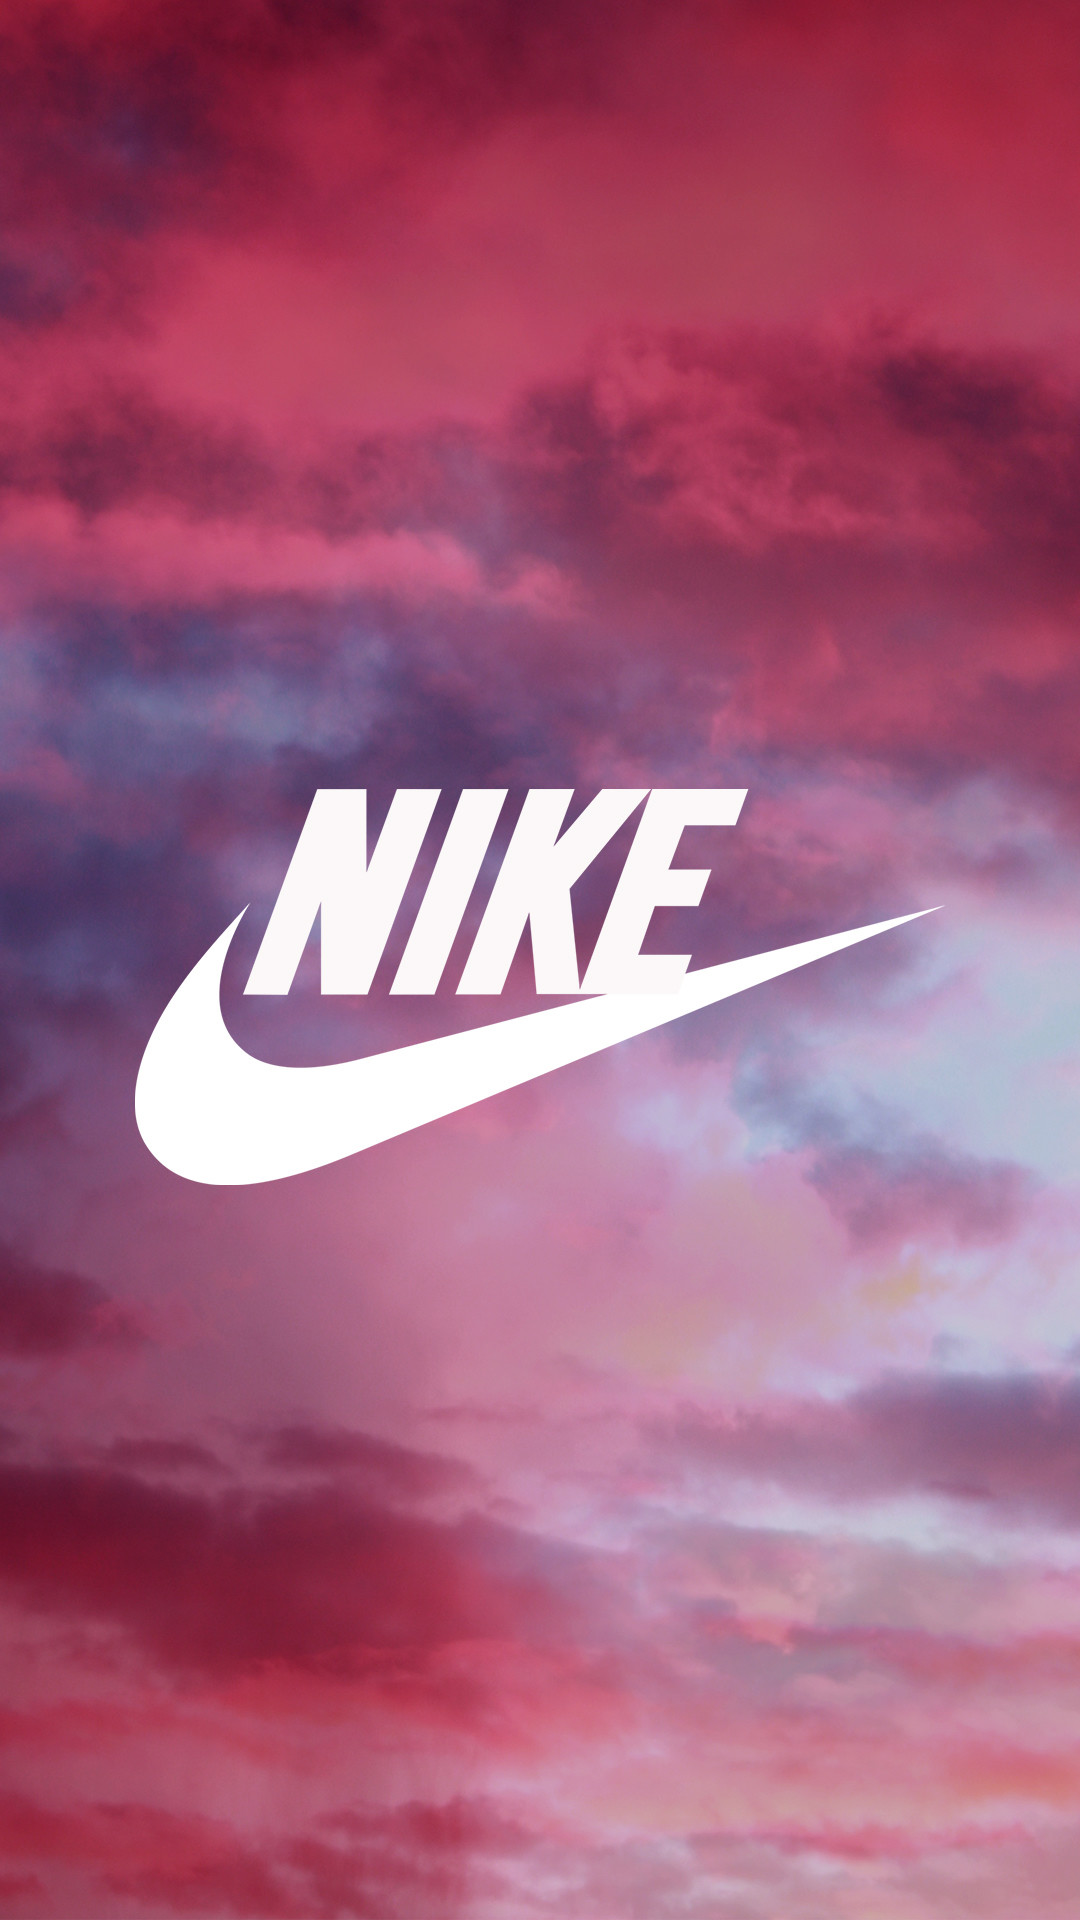 Dope Nike Wallpaper 79 Images